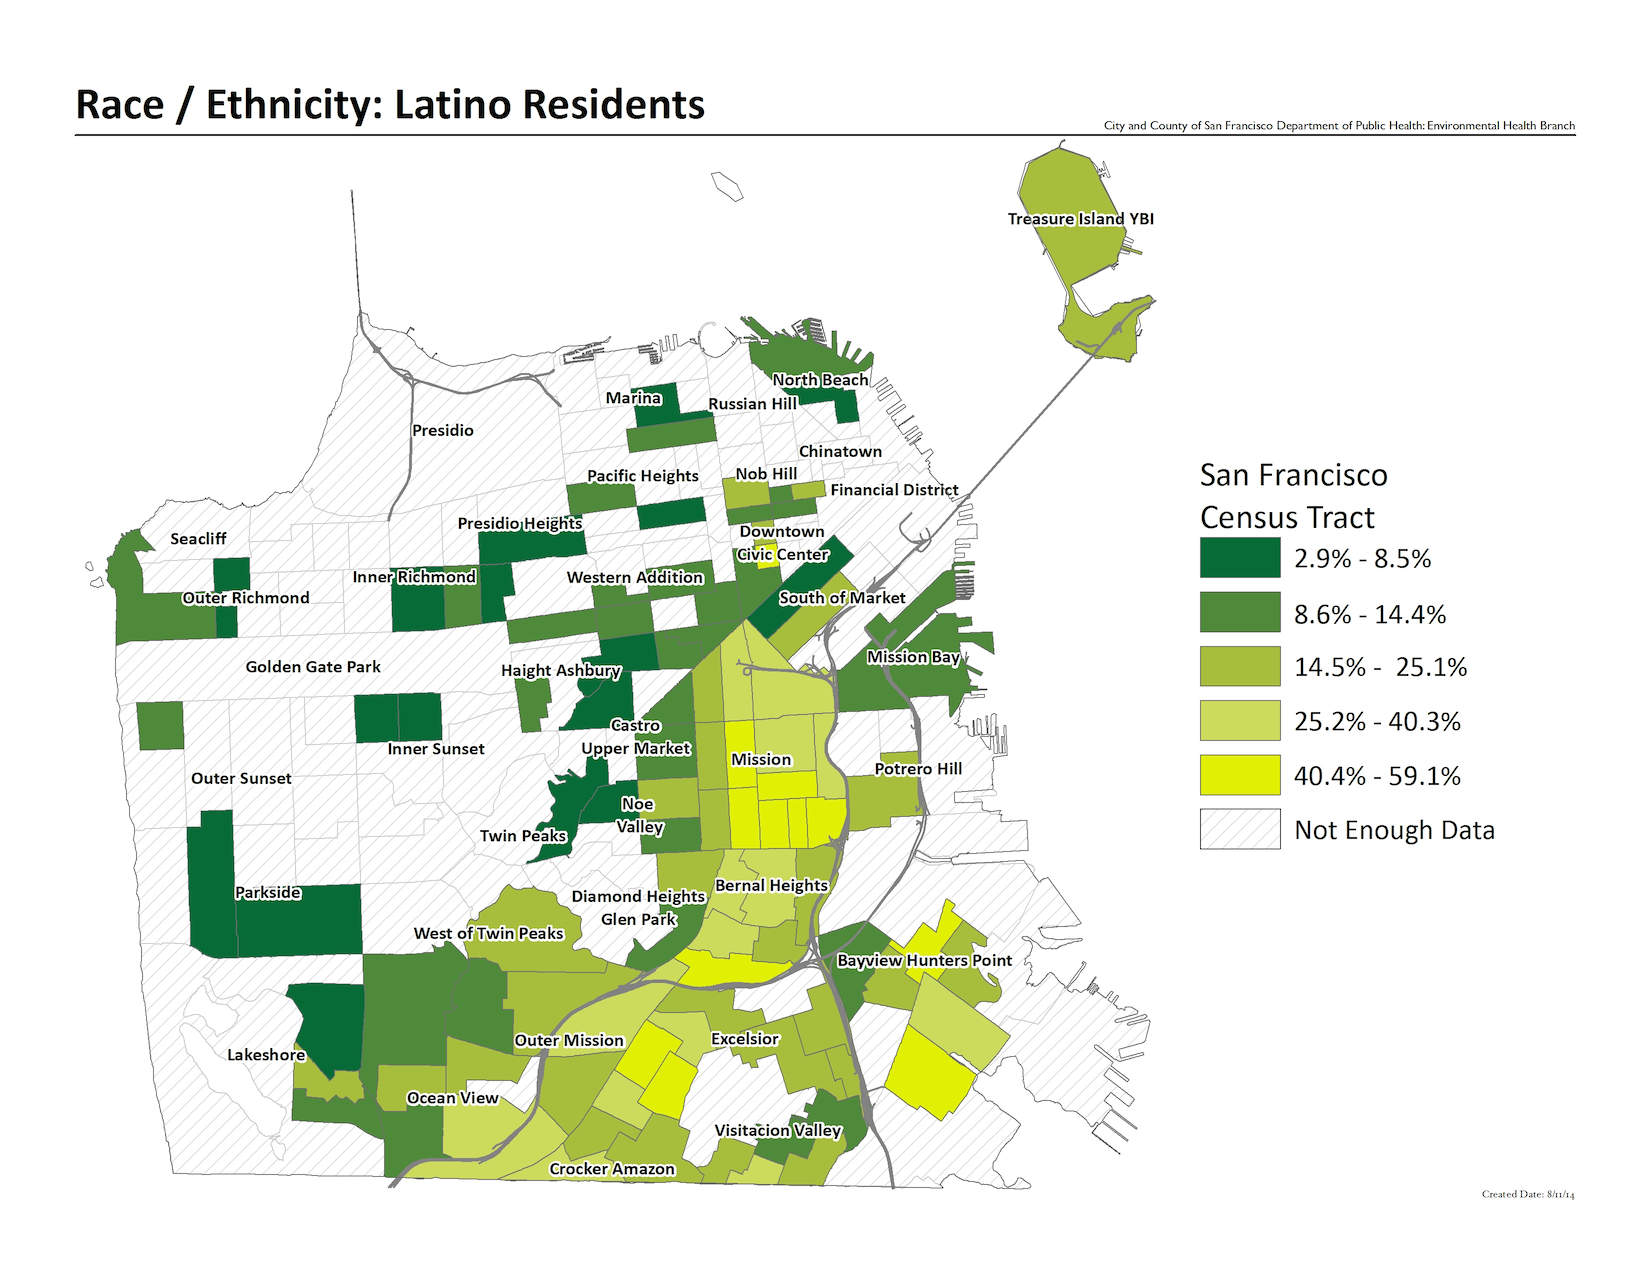 Map of percentage residents Latino by census tract. Mission is the highest with 40.4% to 59.1%